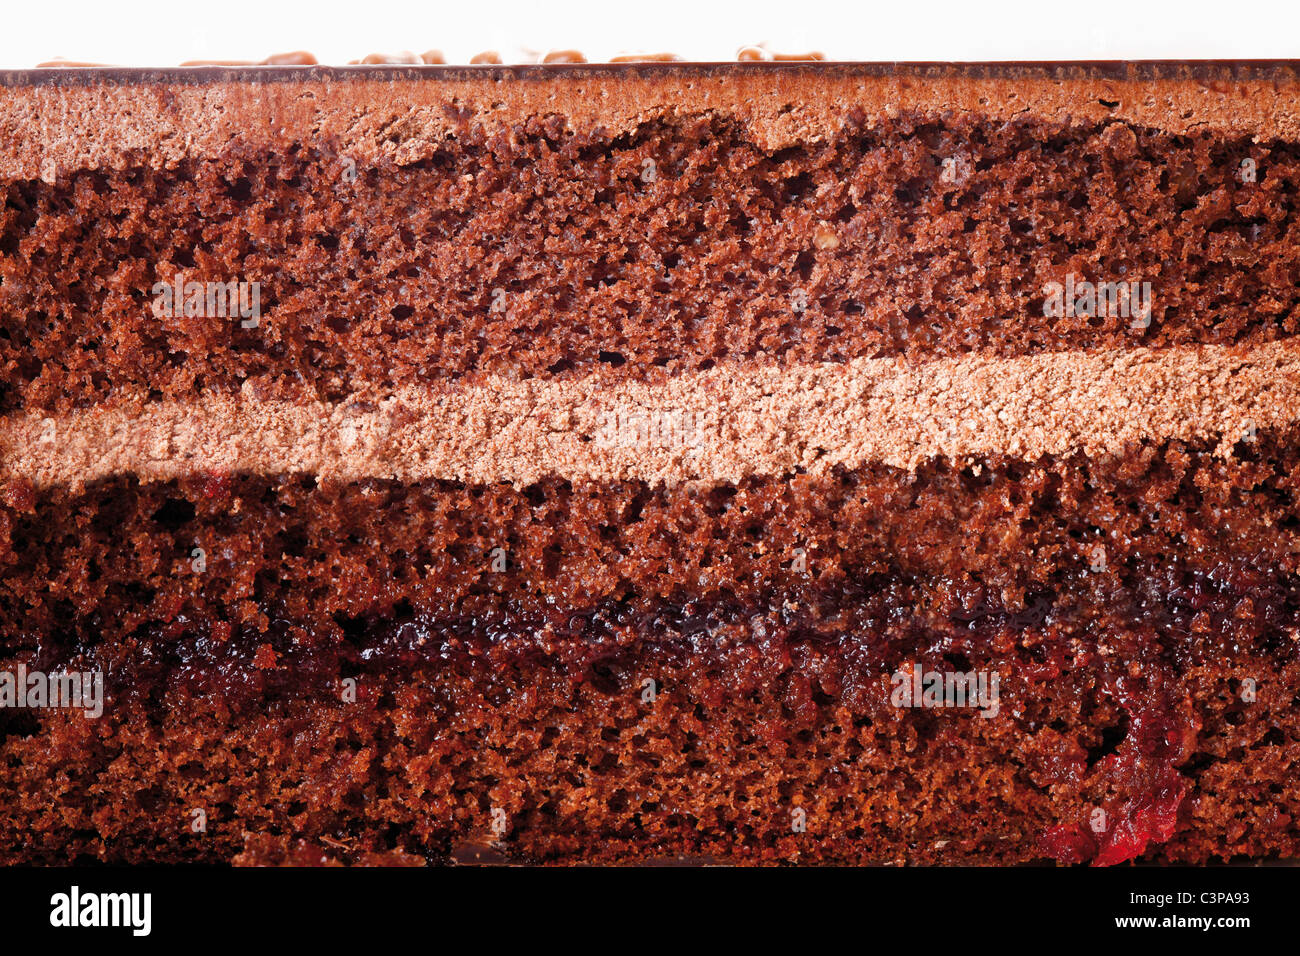 Extreme close up of sacher cake slice - Stock Image